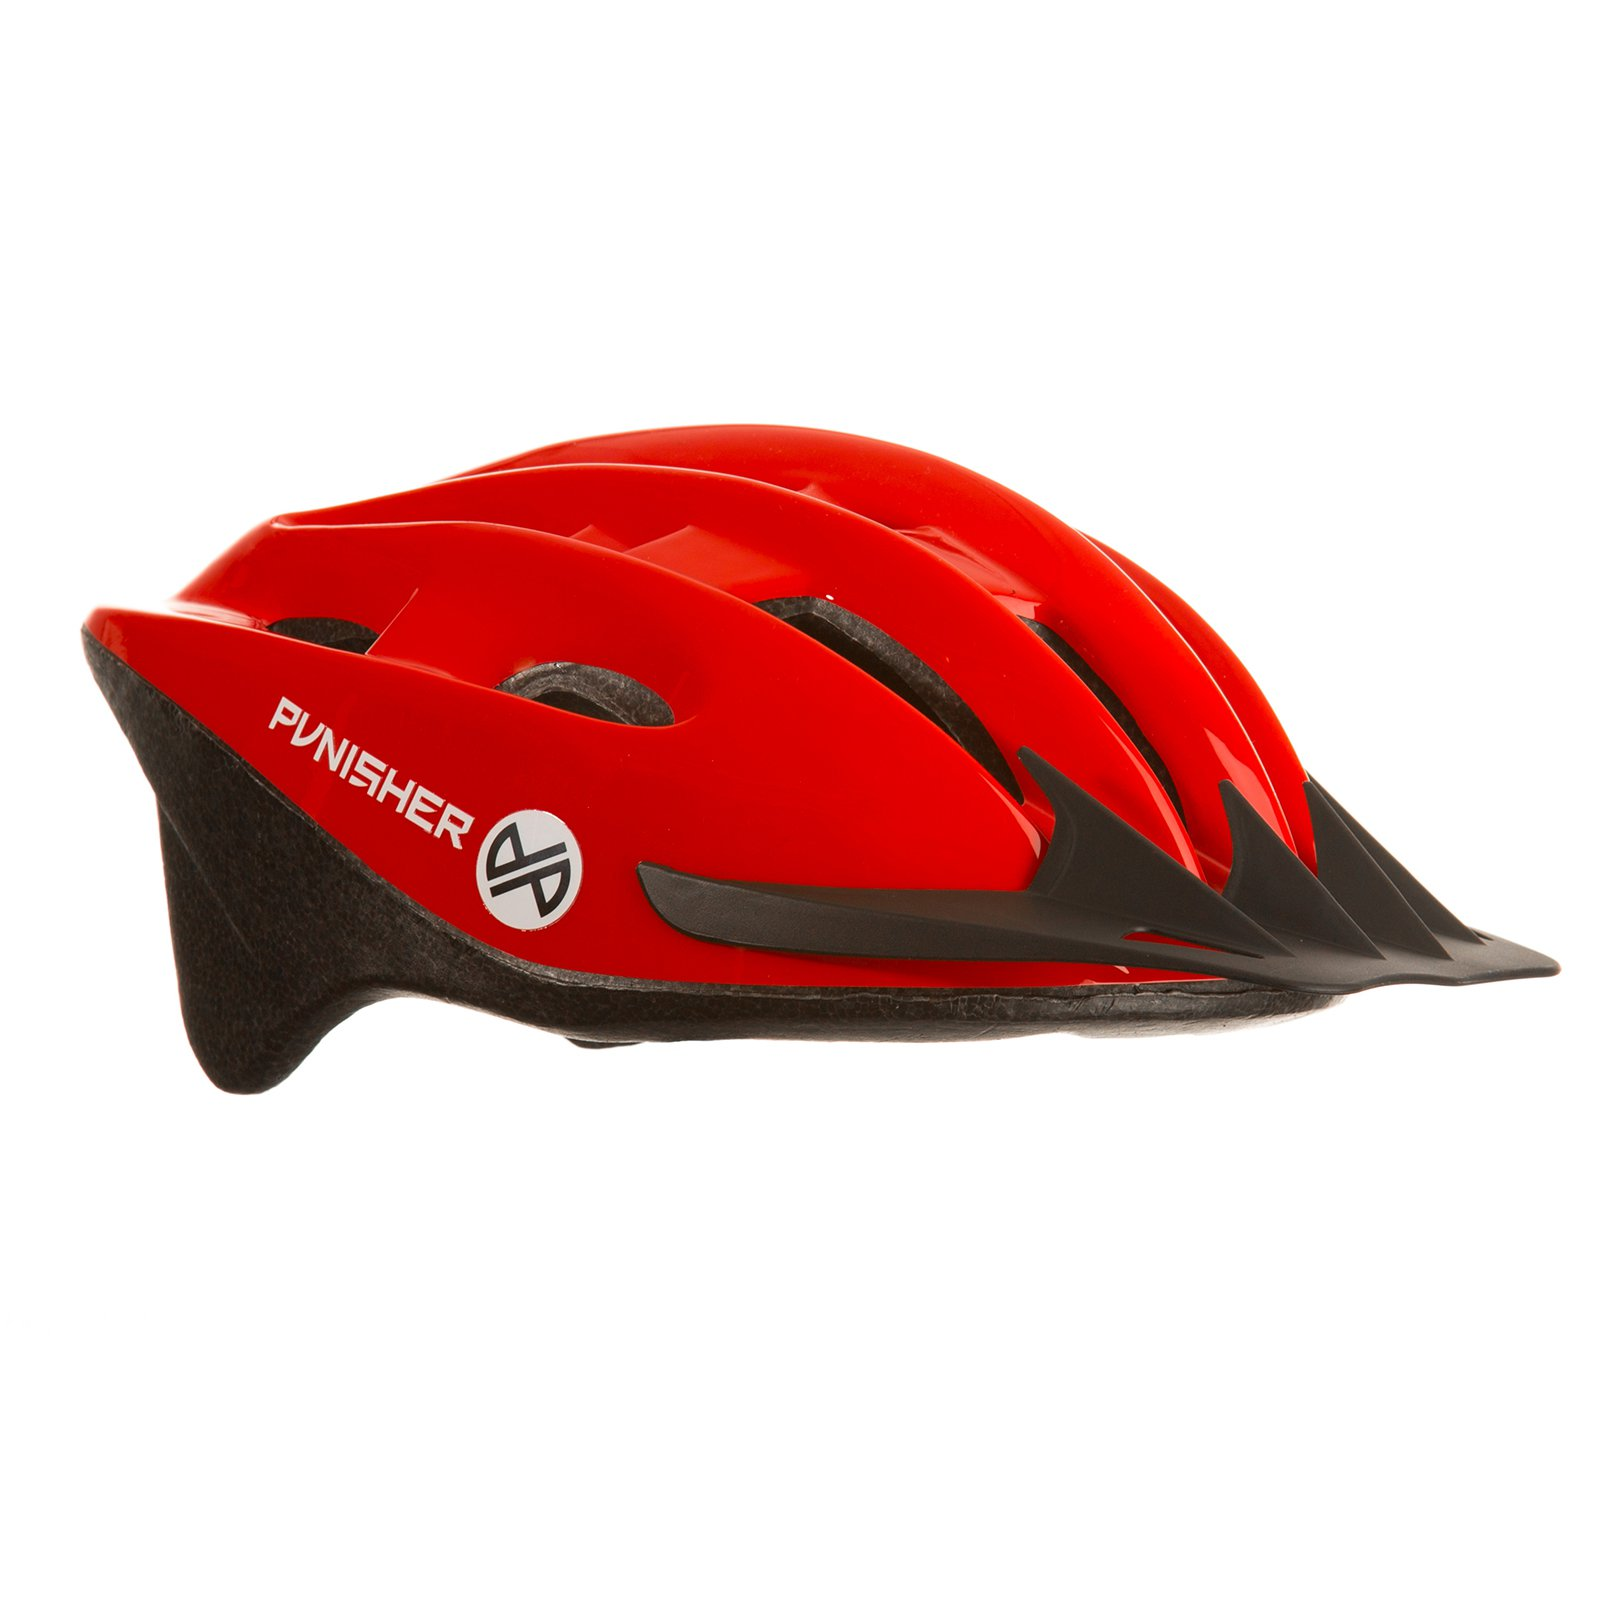 Punisher 18-Vent Adult Cycling Helmet with Imitation In-Mold, Red, Ages 12+ by Punisher Skateboards